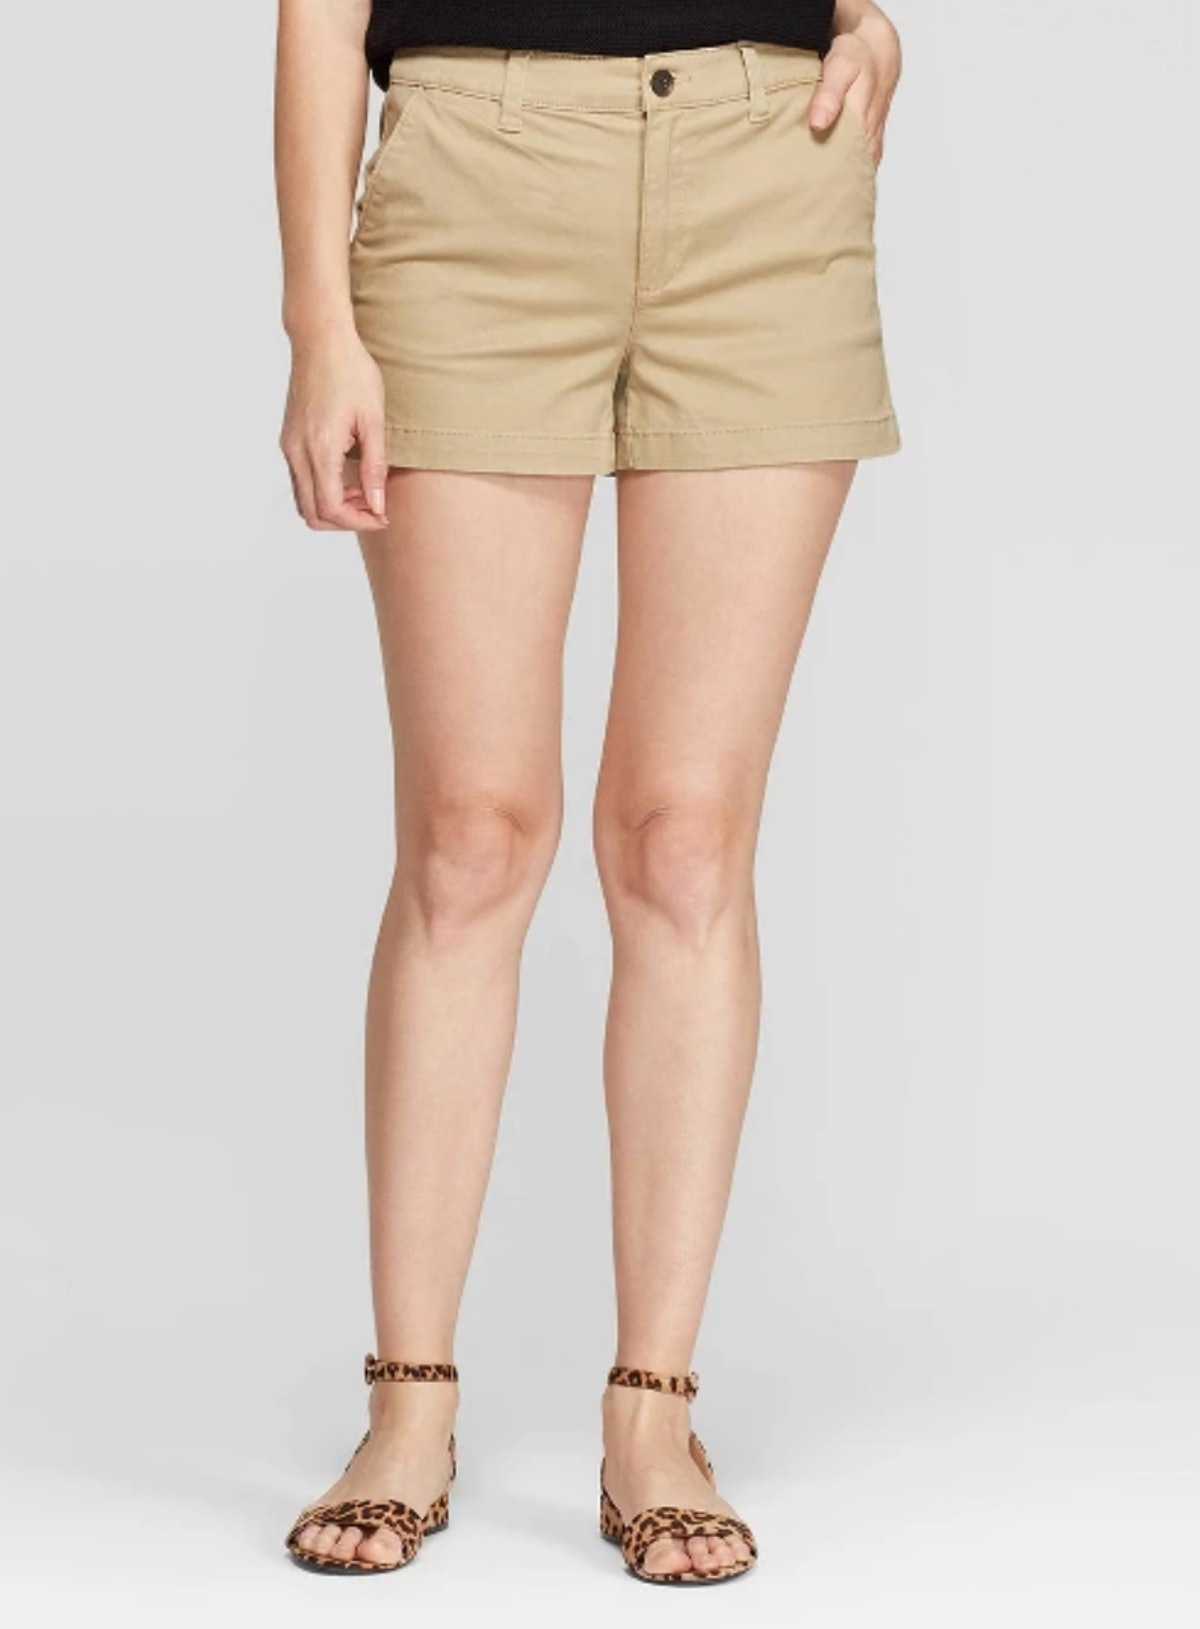 A New Day Women's High-Rise Chino Shorts